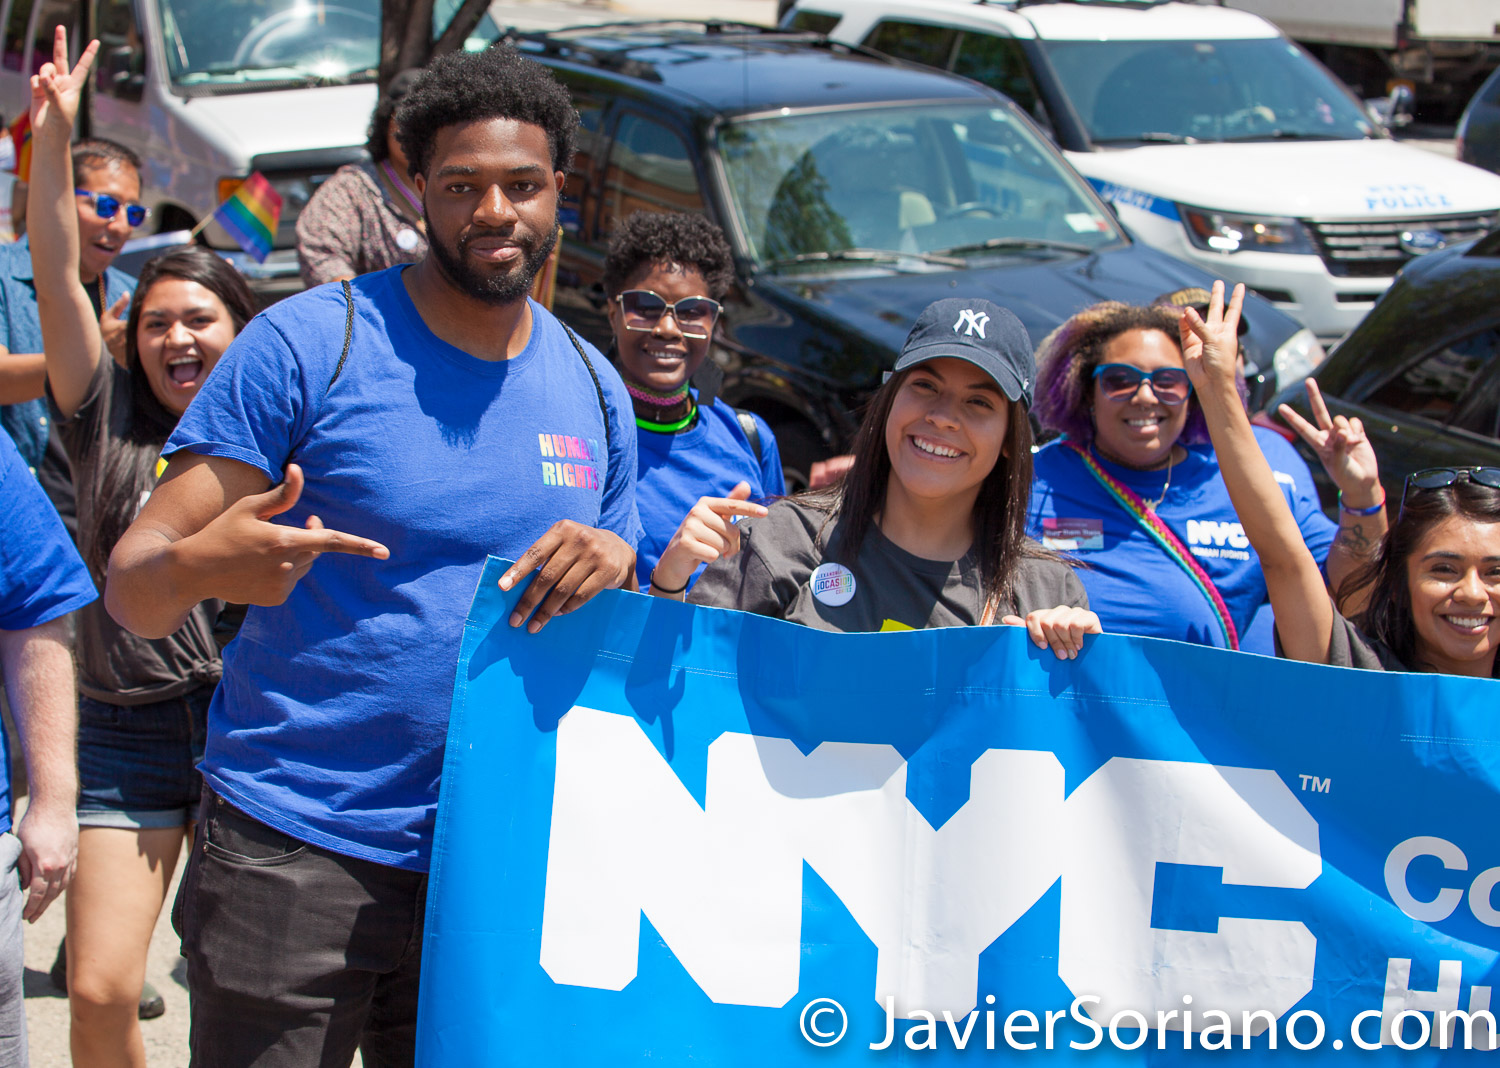 New York City – The 1 Bronx World Pride Rally, March and Festival was on Sunday, June 23, 2019. People celebrated Bronx World Pride, Pride Month and the 50th anniversary of the Stonewall Rebellion. The rally was at 161st Street and Grand Concourse. After the rally people marched the festival at 149th Street and 3rd Ave.